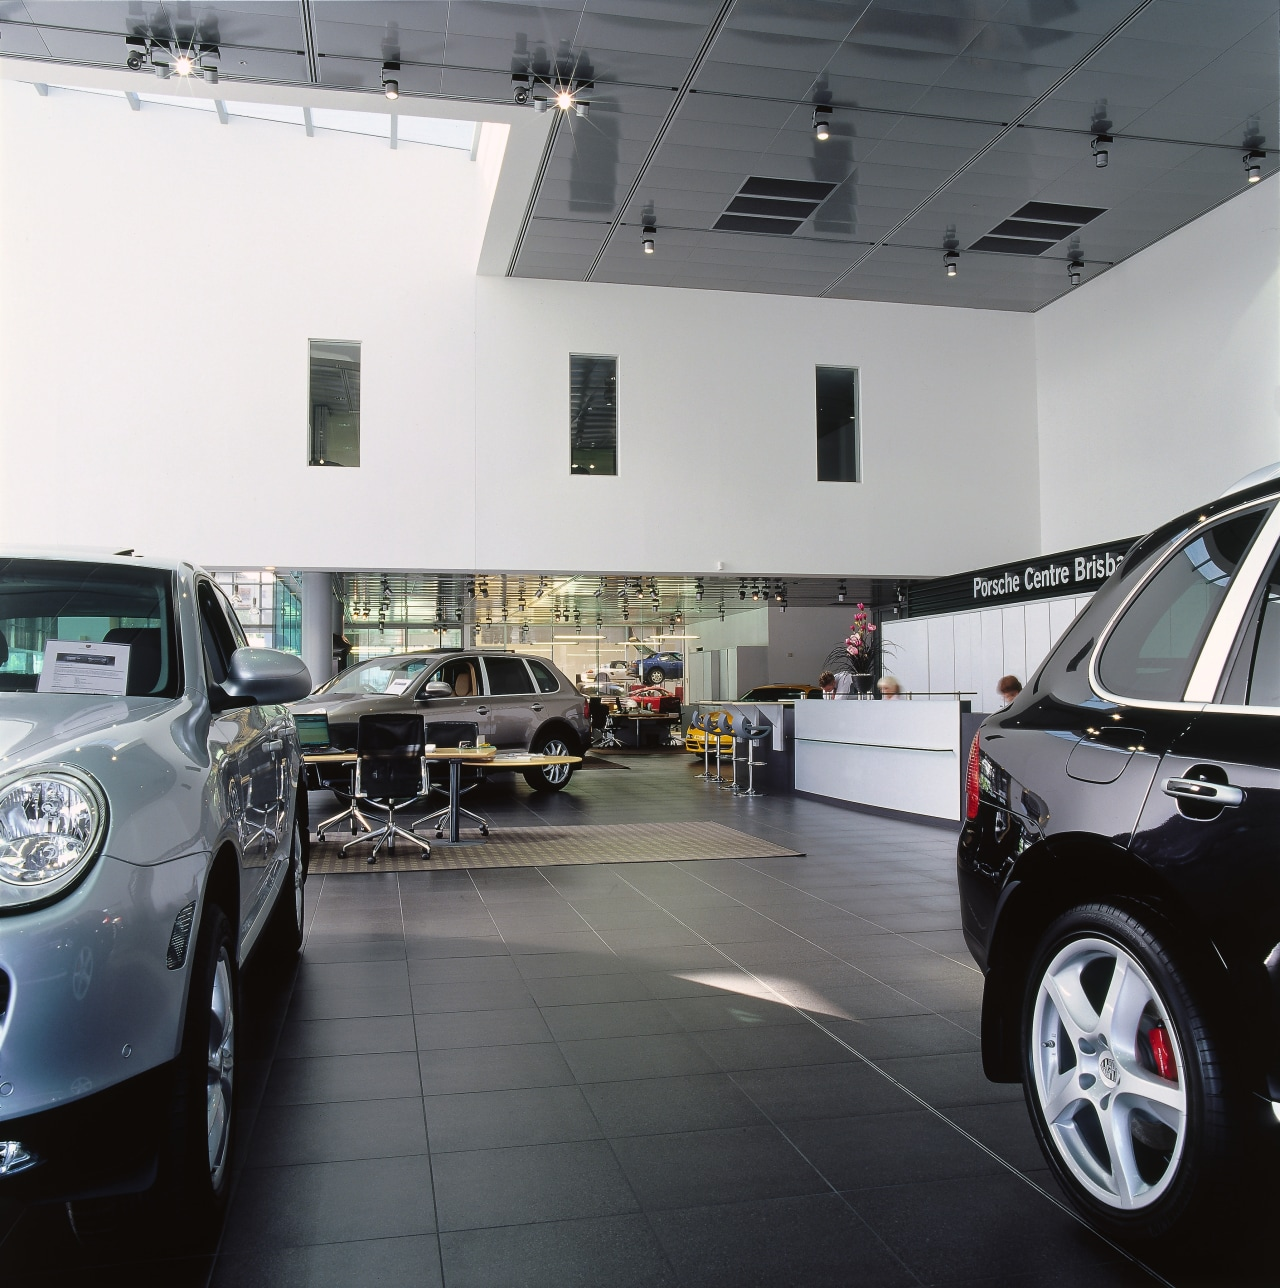 view of the warehouse area automobile repair shop, automotive design, automotive exterior, building, car, car dealership, executive car, family car, luxury vehicle, mid size car, motor vehicle, personal luxury car, sport utility vehicle, technology, vehicle, gray, black